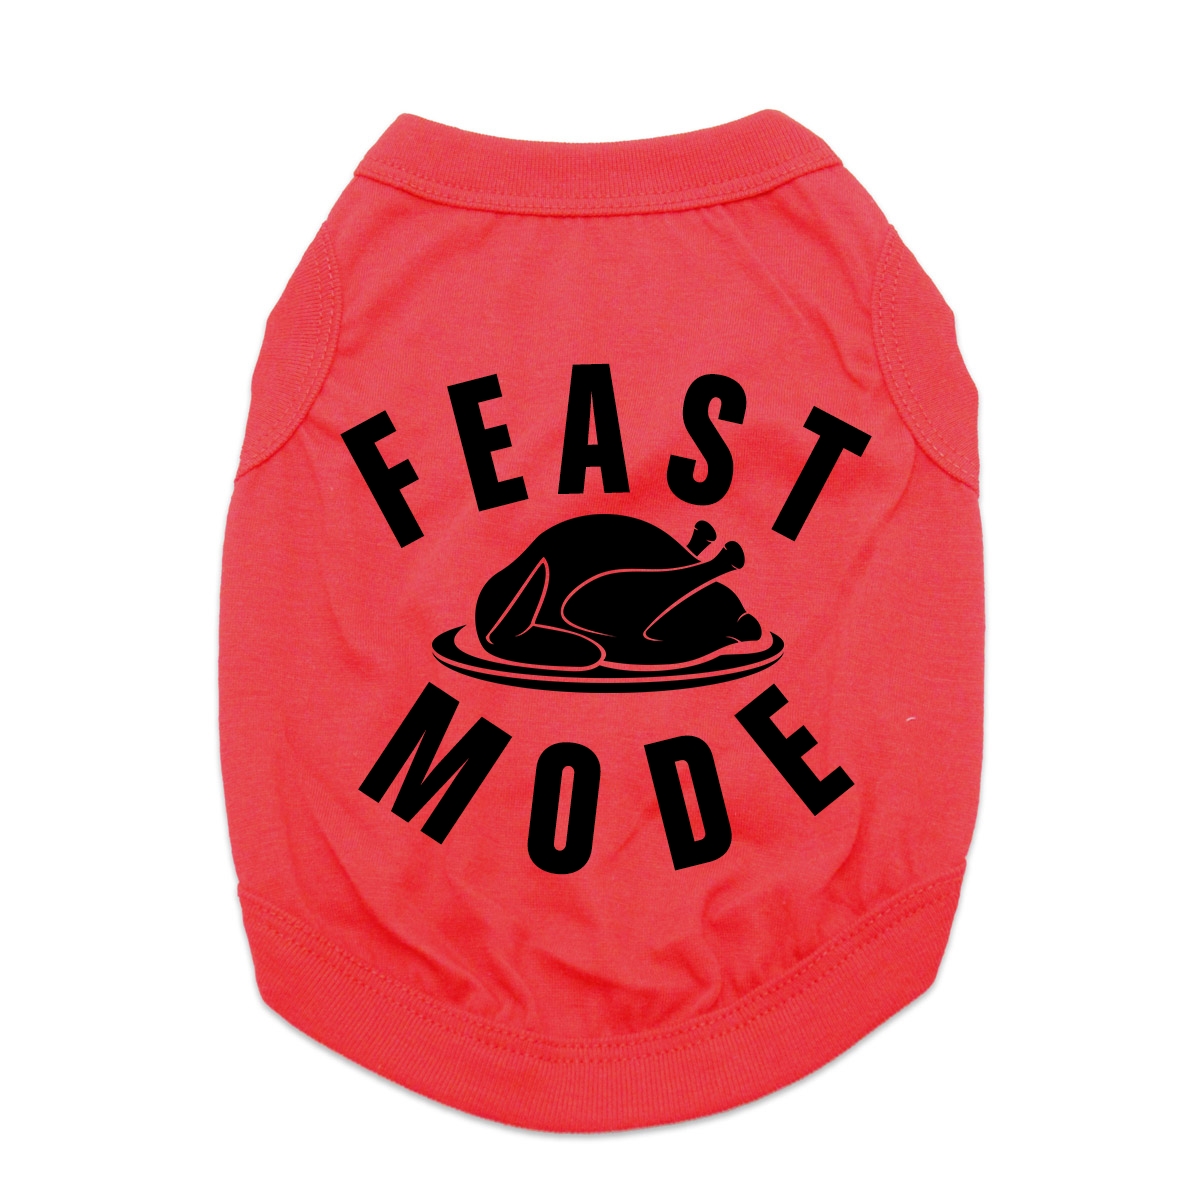 Feast Mode Dog Shirt - Red